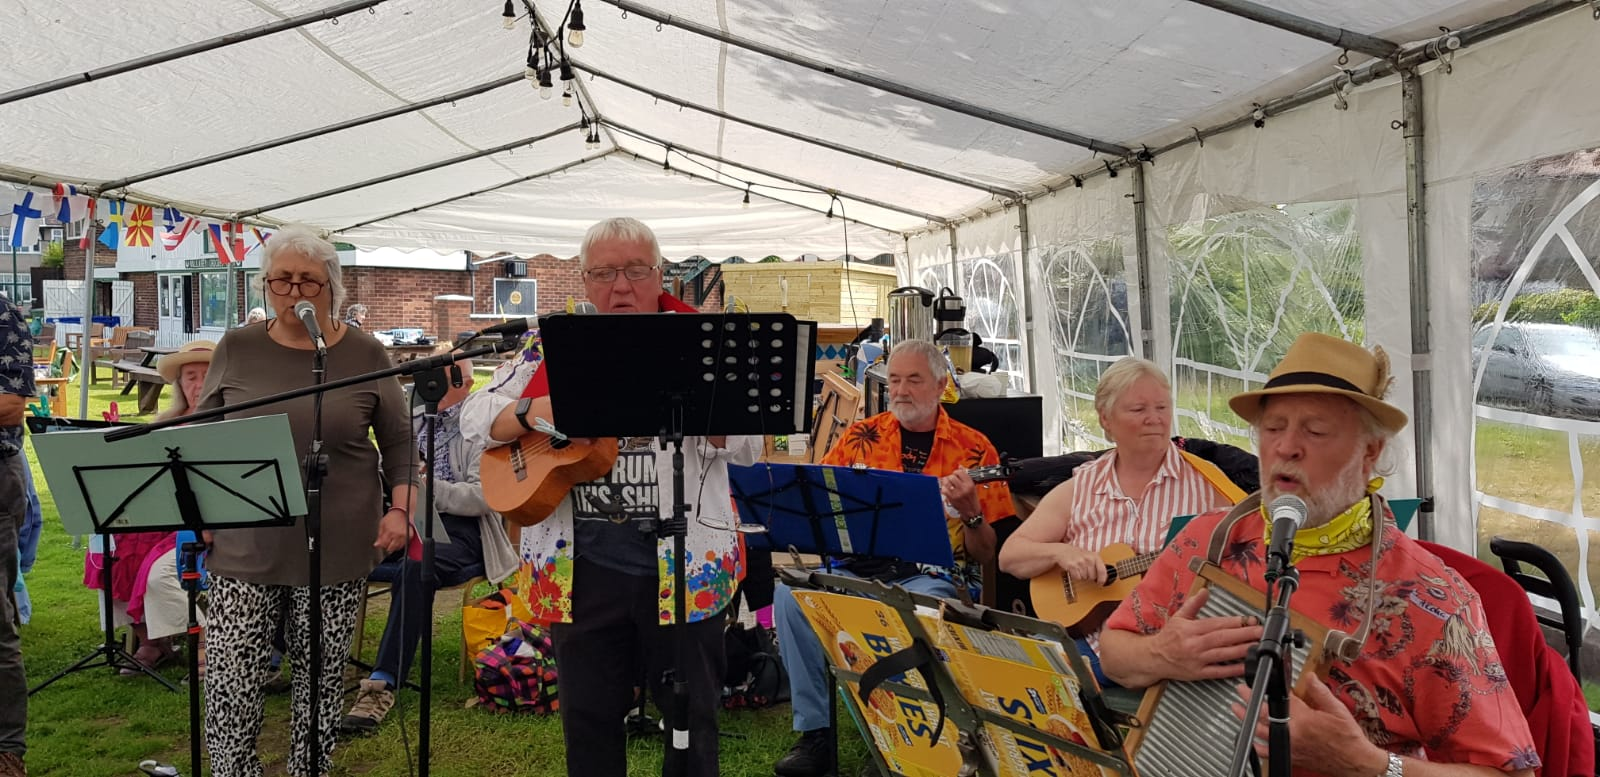 Our Ukulele Group at the Garden Party